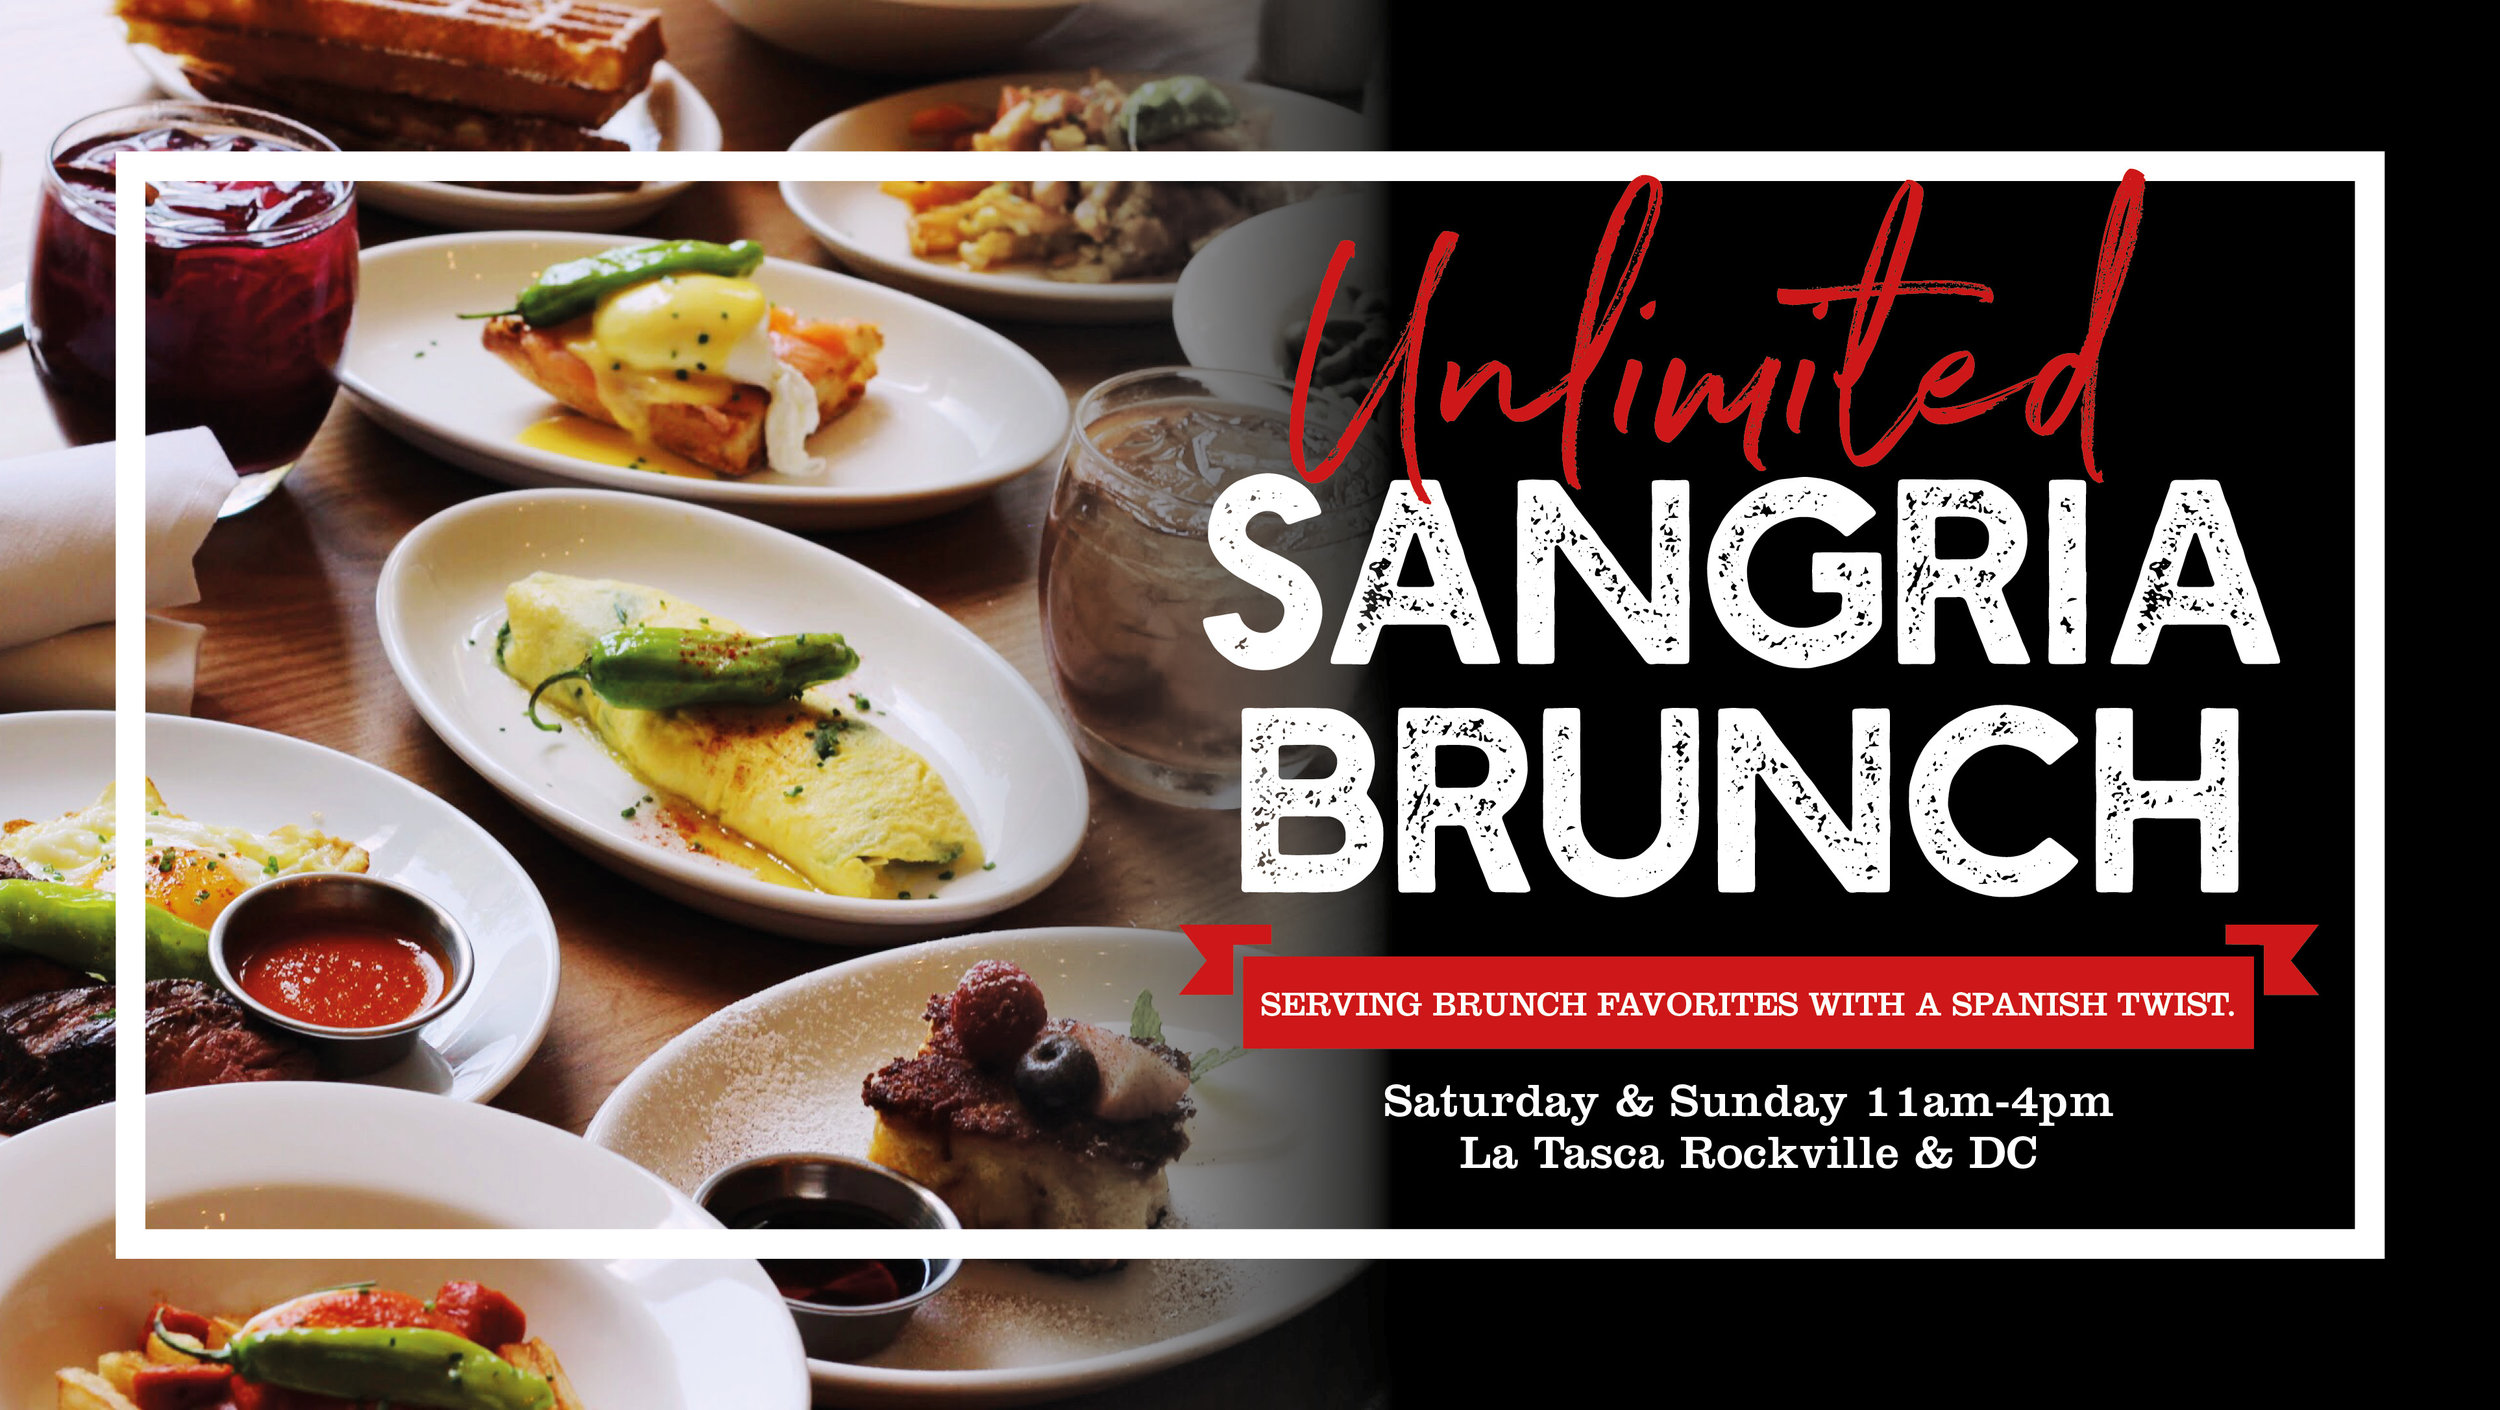 Unlimited Brunch - Bottomless sangria brunch and three brunch tapas for $39 every Saturday & Sunday at La Tasca DC & Rockville.